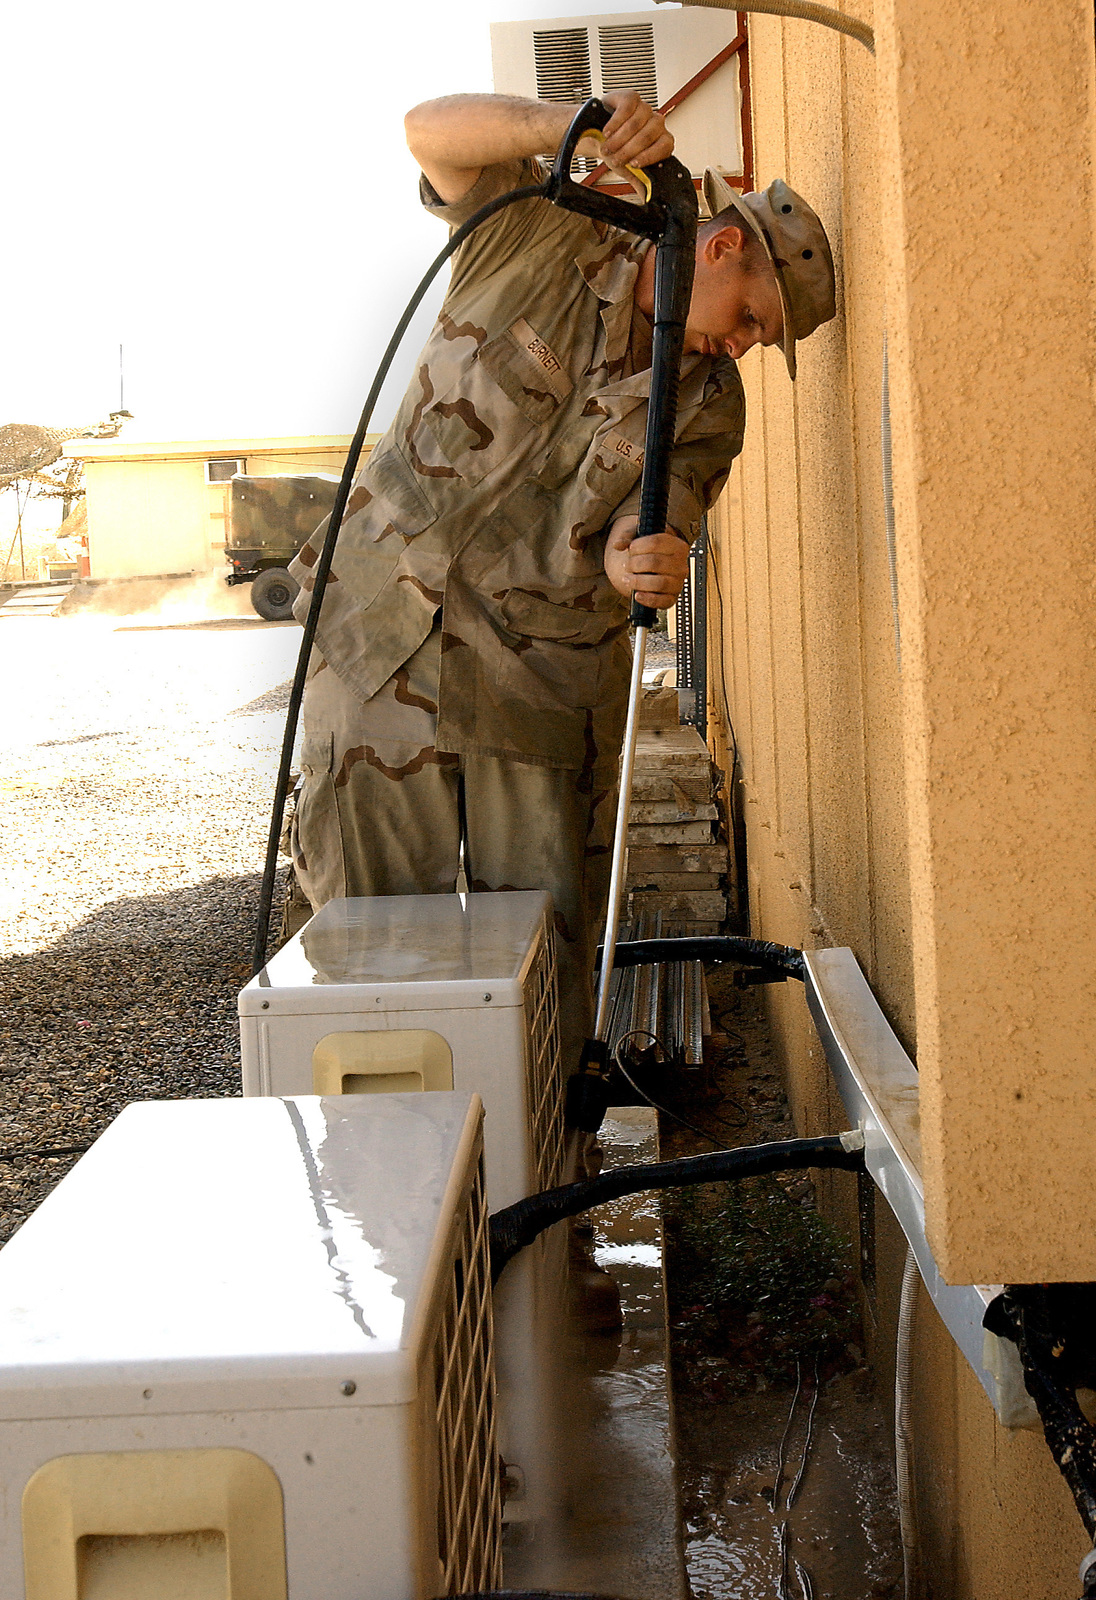 US Air Force (USAF) AIRMAN First Class (A1C) Steve Burnett, 320th Expeditionary Civil Engineering Squadron (ECES), uses a high-pressure washer to rinses off an air conditioning unit filter during a routine maintenance check, while deployed at an undisclosed location in South West Asia, during Operation ENDURING FREEDOM